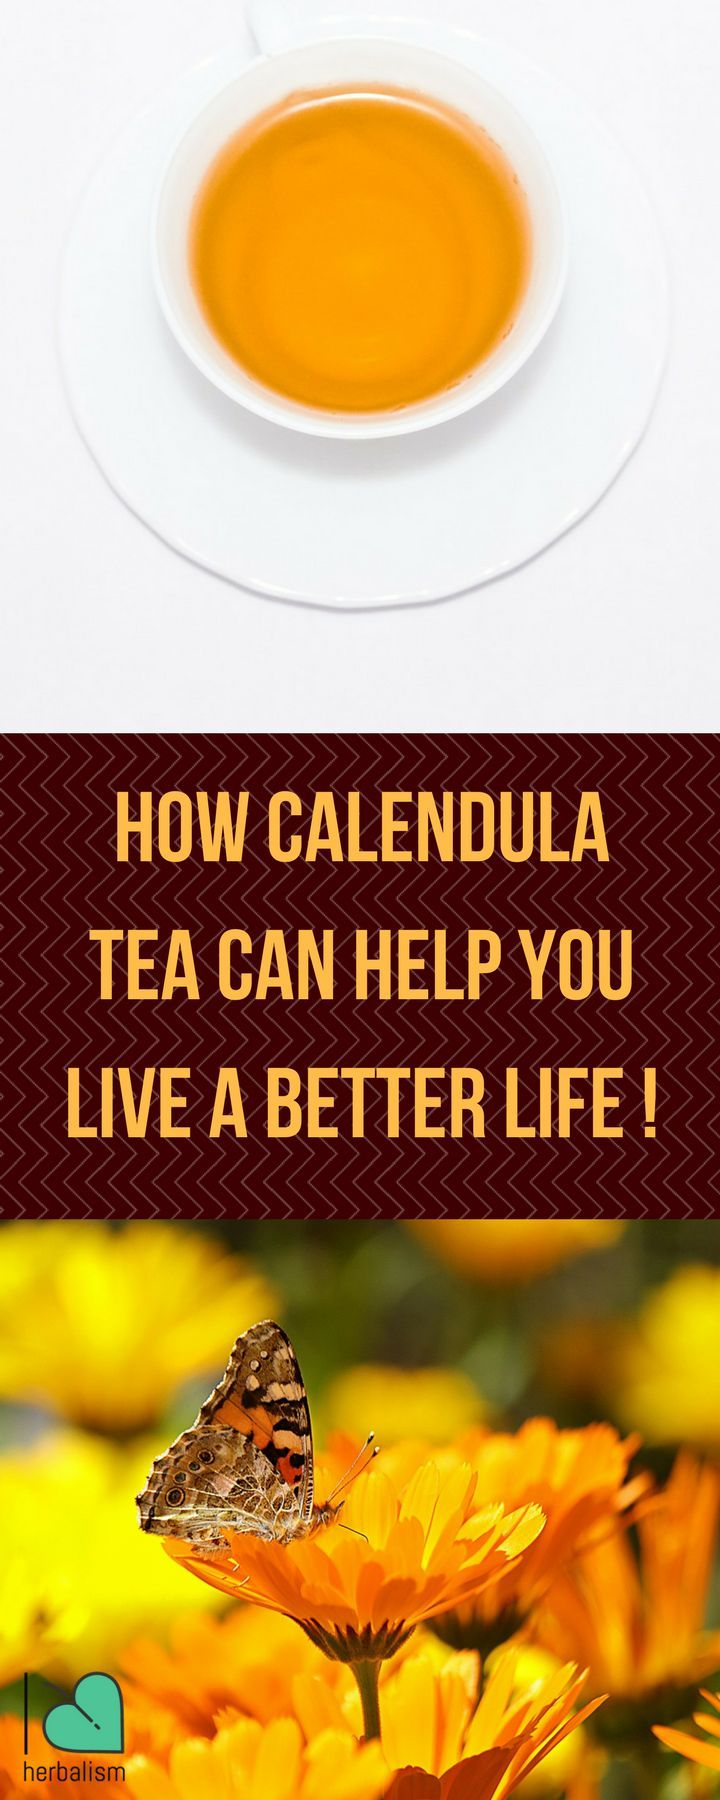 You don't want to miss these awesome benefits of calendula tea. Calendula tea provides a flower scent and taste, pleasant and smooth , and makes a delightful infusion when enhanced with a bit of honey or sugar.